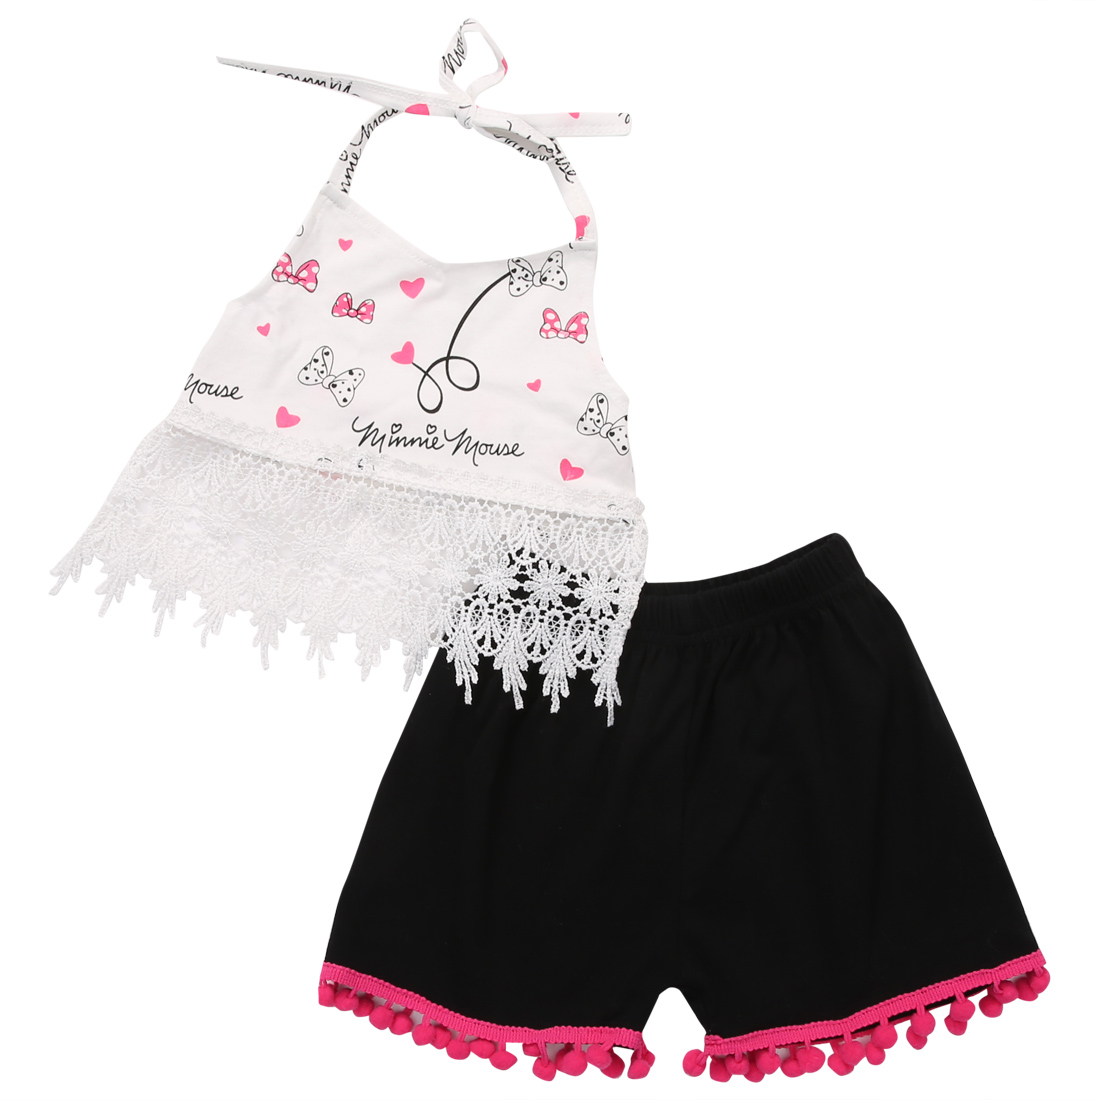 2PCS Newborn Baby Girl Clothes 2017 Summer Lace Crop Top Tanks +Tassel Hot Pant Outfit Kids Girls Clothing Set Bebek Giyim 0-24M 2017 floral baby romper newborn baby girl clothes ruffles sleeve bodysuit headband 2pcs outfit bebek giyim sunsuit 0 24m